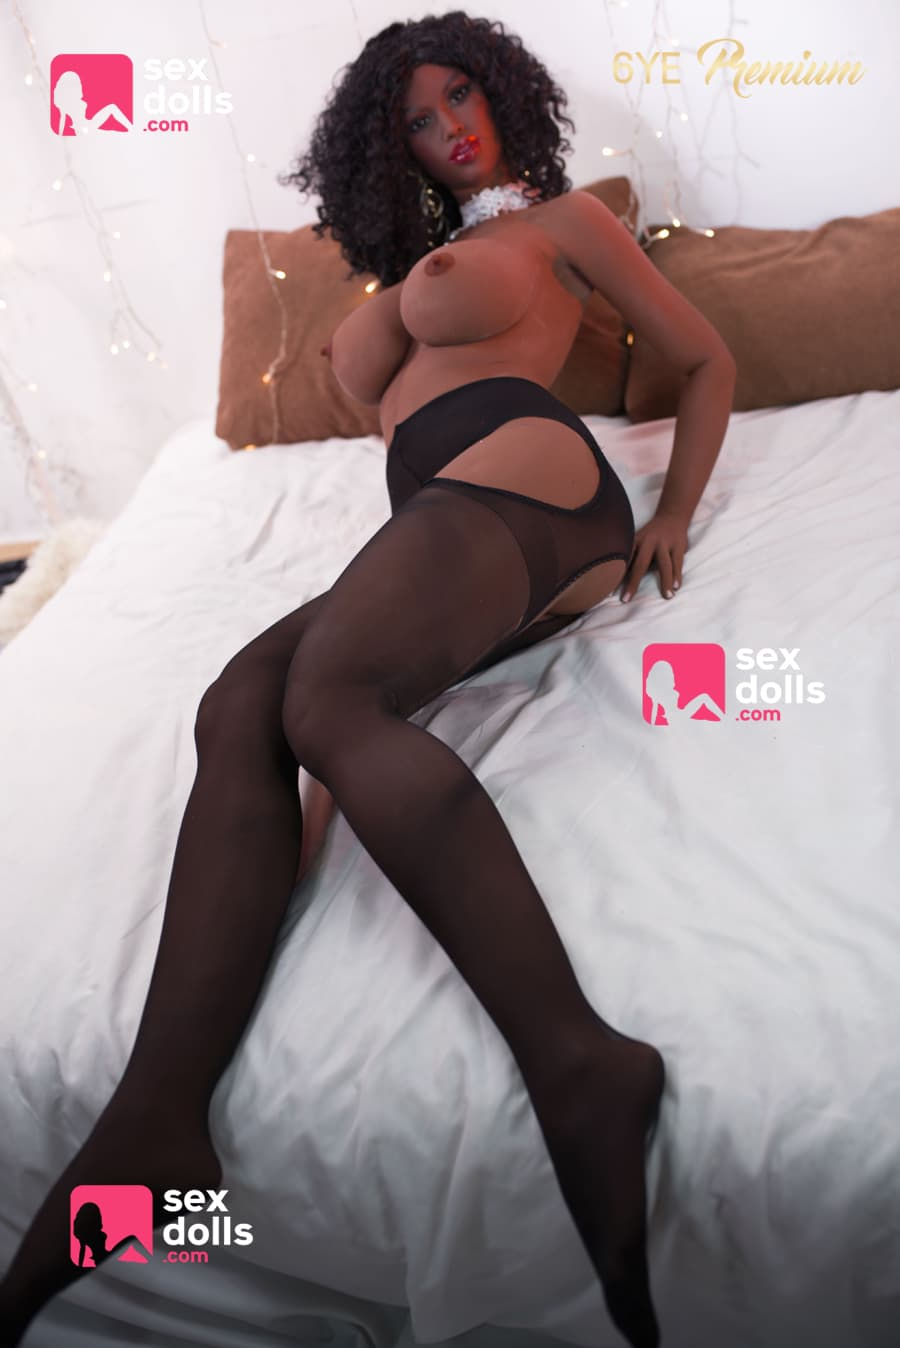 lynette 161cm dark skin tone black hair brown big boobs athletic tpe sex doll(5)